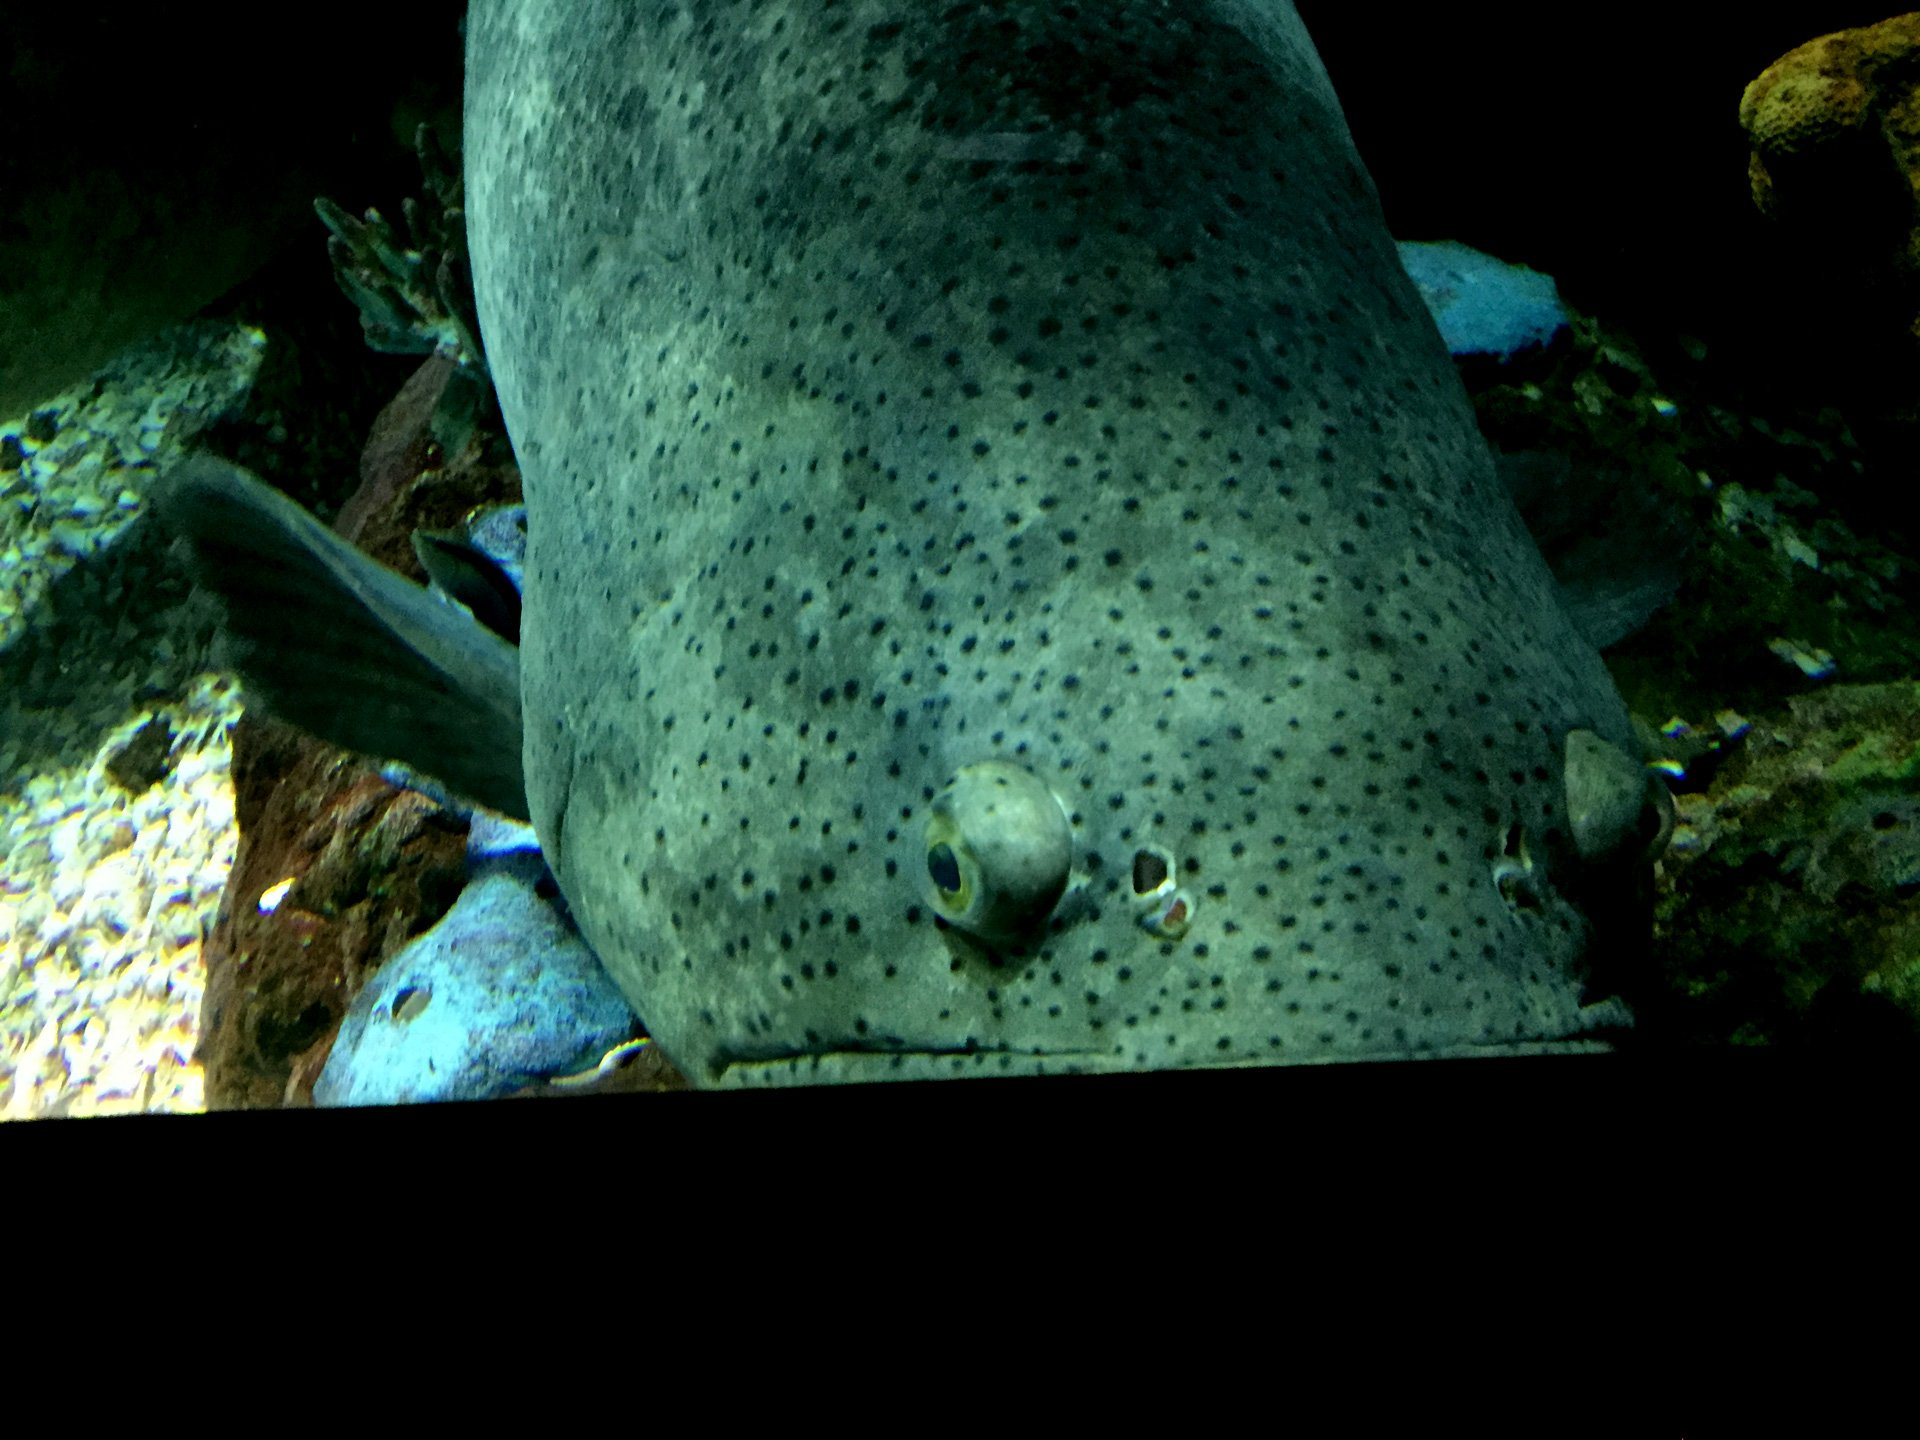 Evolution has done wild things with fish eyes